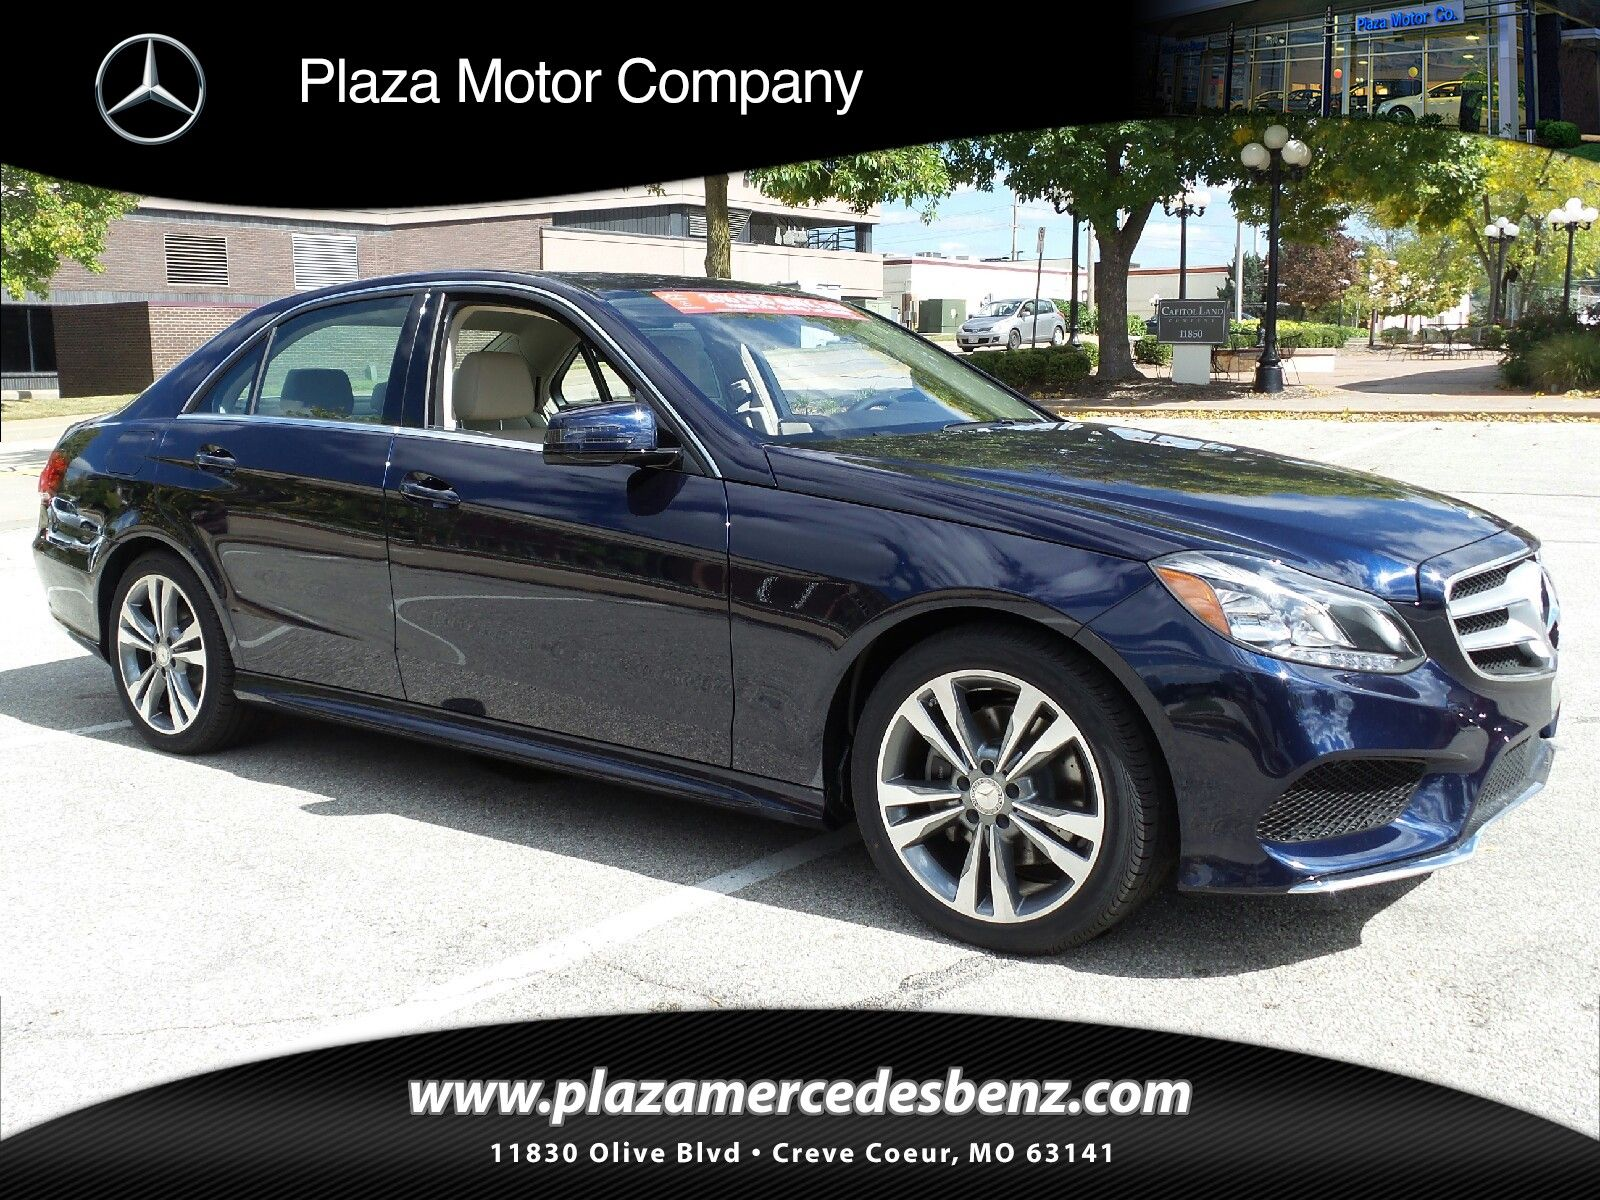 New 2016 Mercedes Benz E Class For Sale Creve Coeur Mo Benz E Class Mercedes Benz Cars Benz